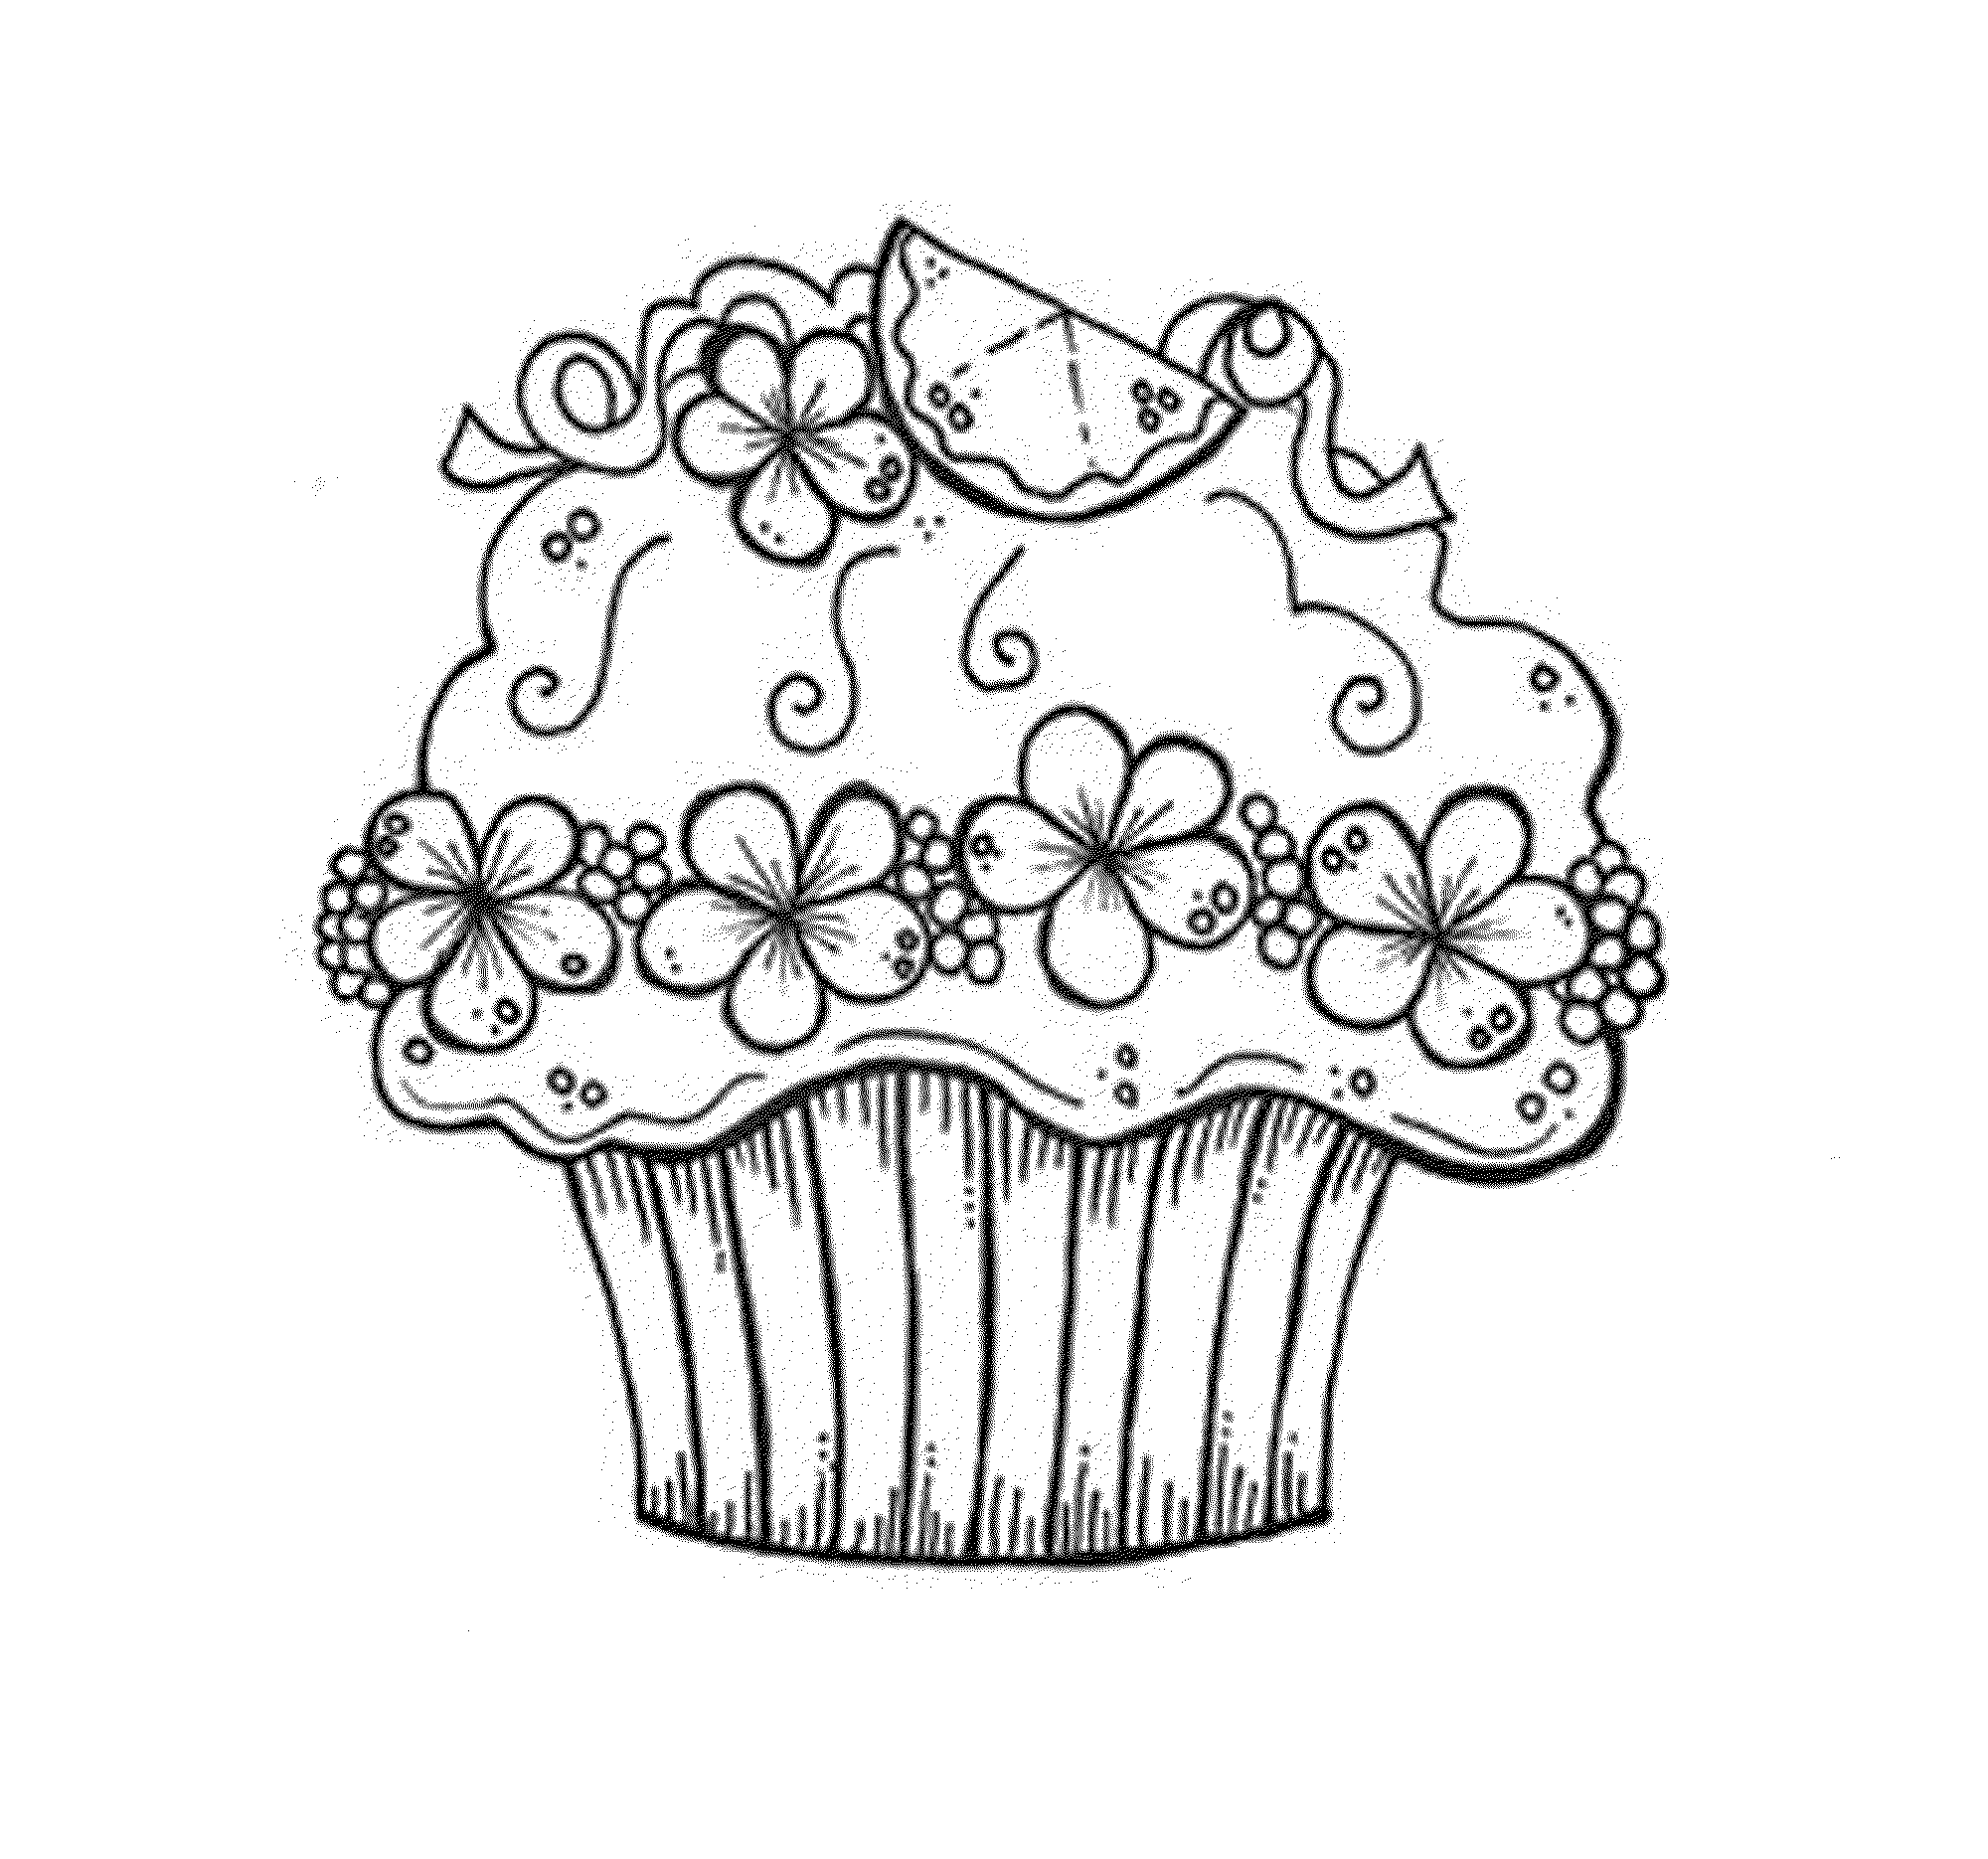 printable cupcake coloring pages cupcake printable coloring pages coloring home cupcake printable coloring pages